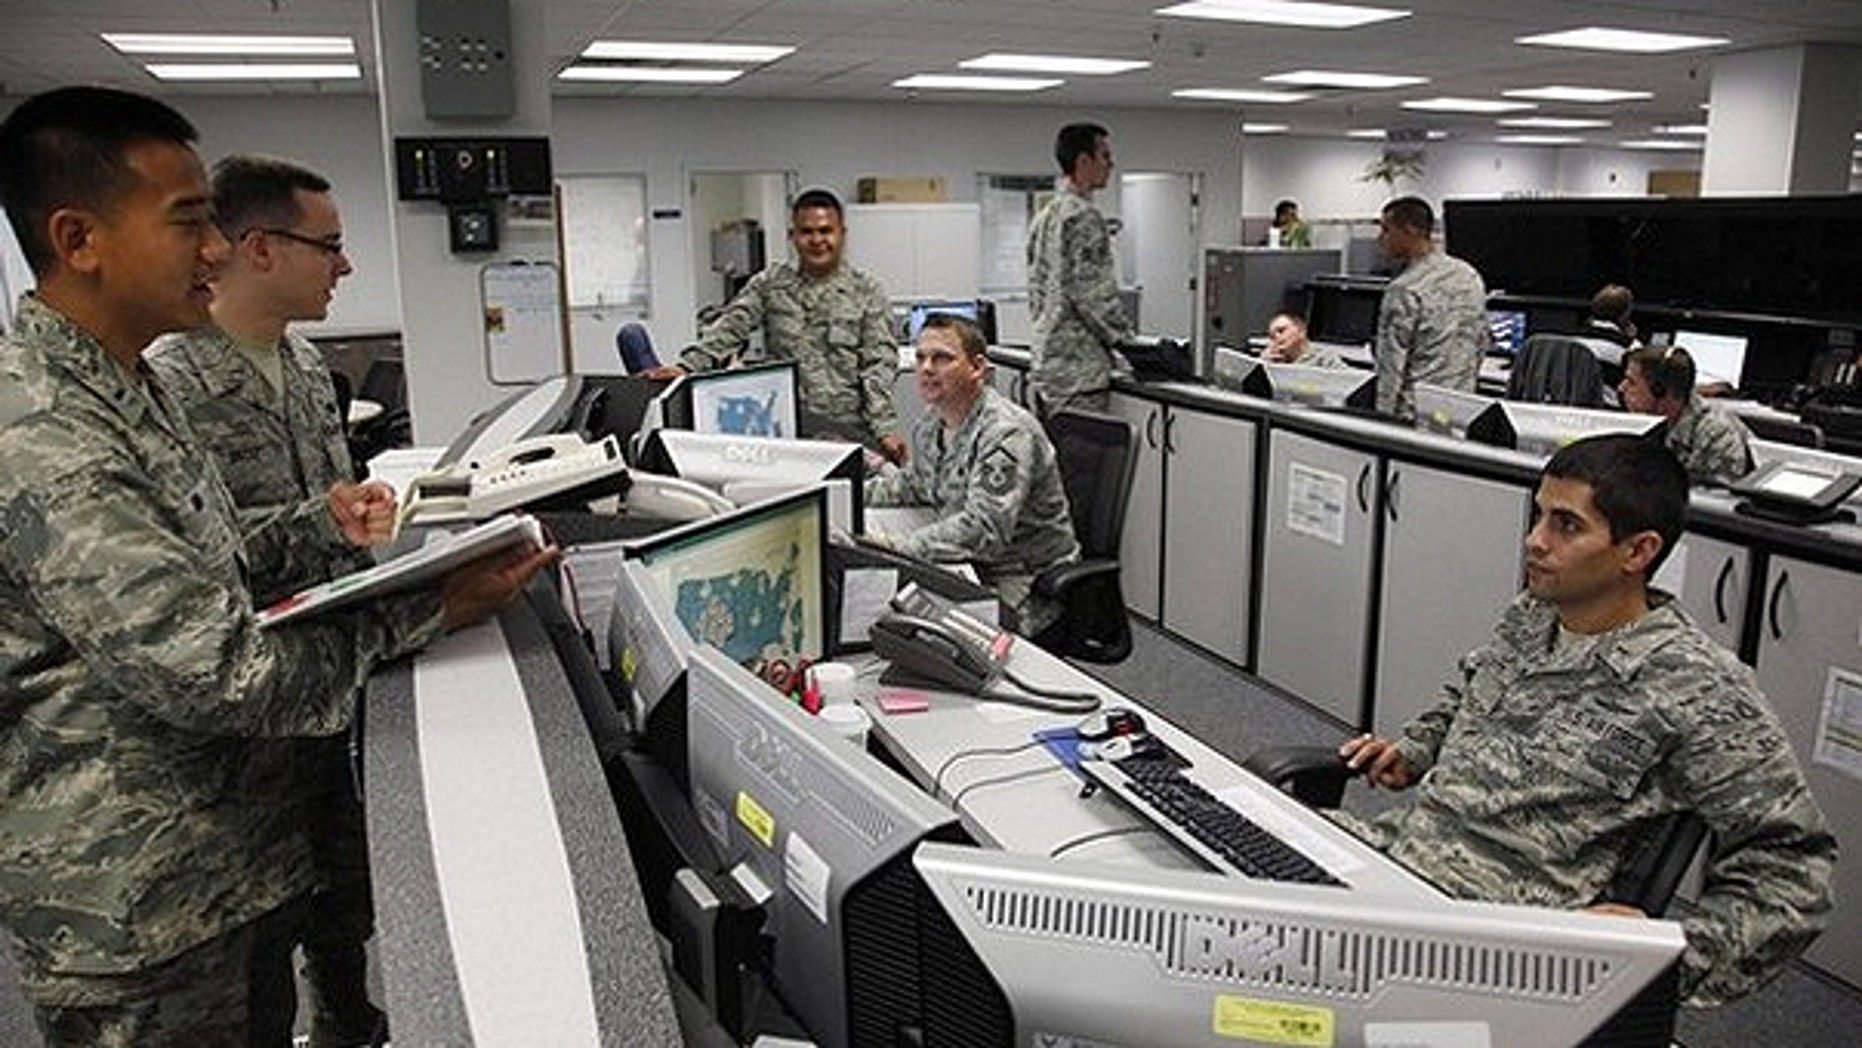 July 20, 2010: Personnel work at the Air Force Space Command Network Operations & Security Center at Peterson Air Force Base in Colorado Springs.